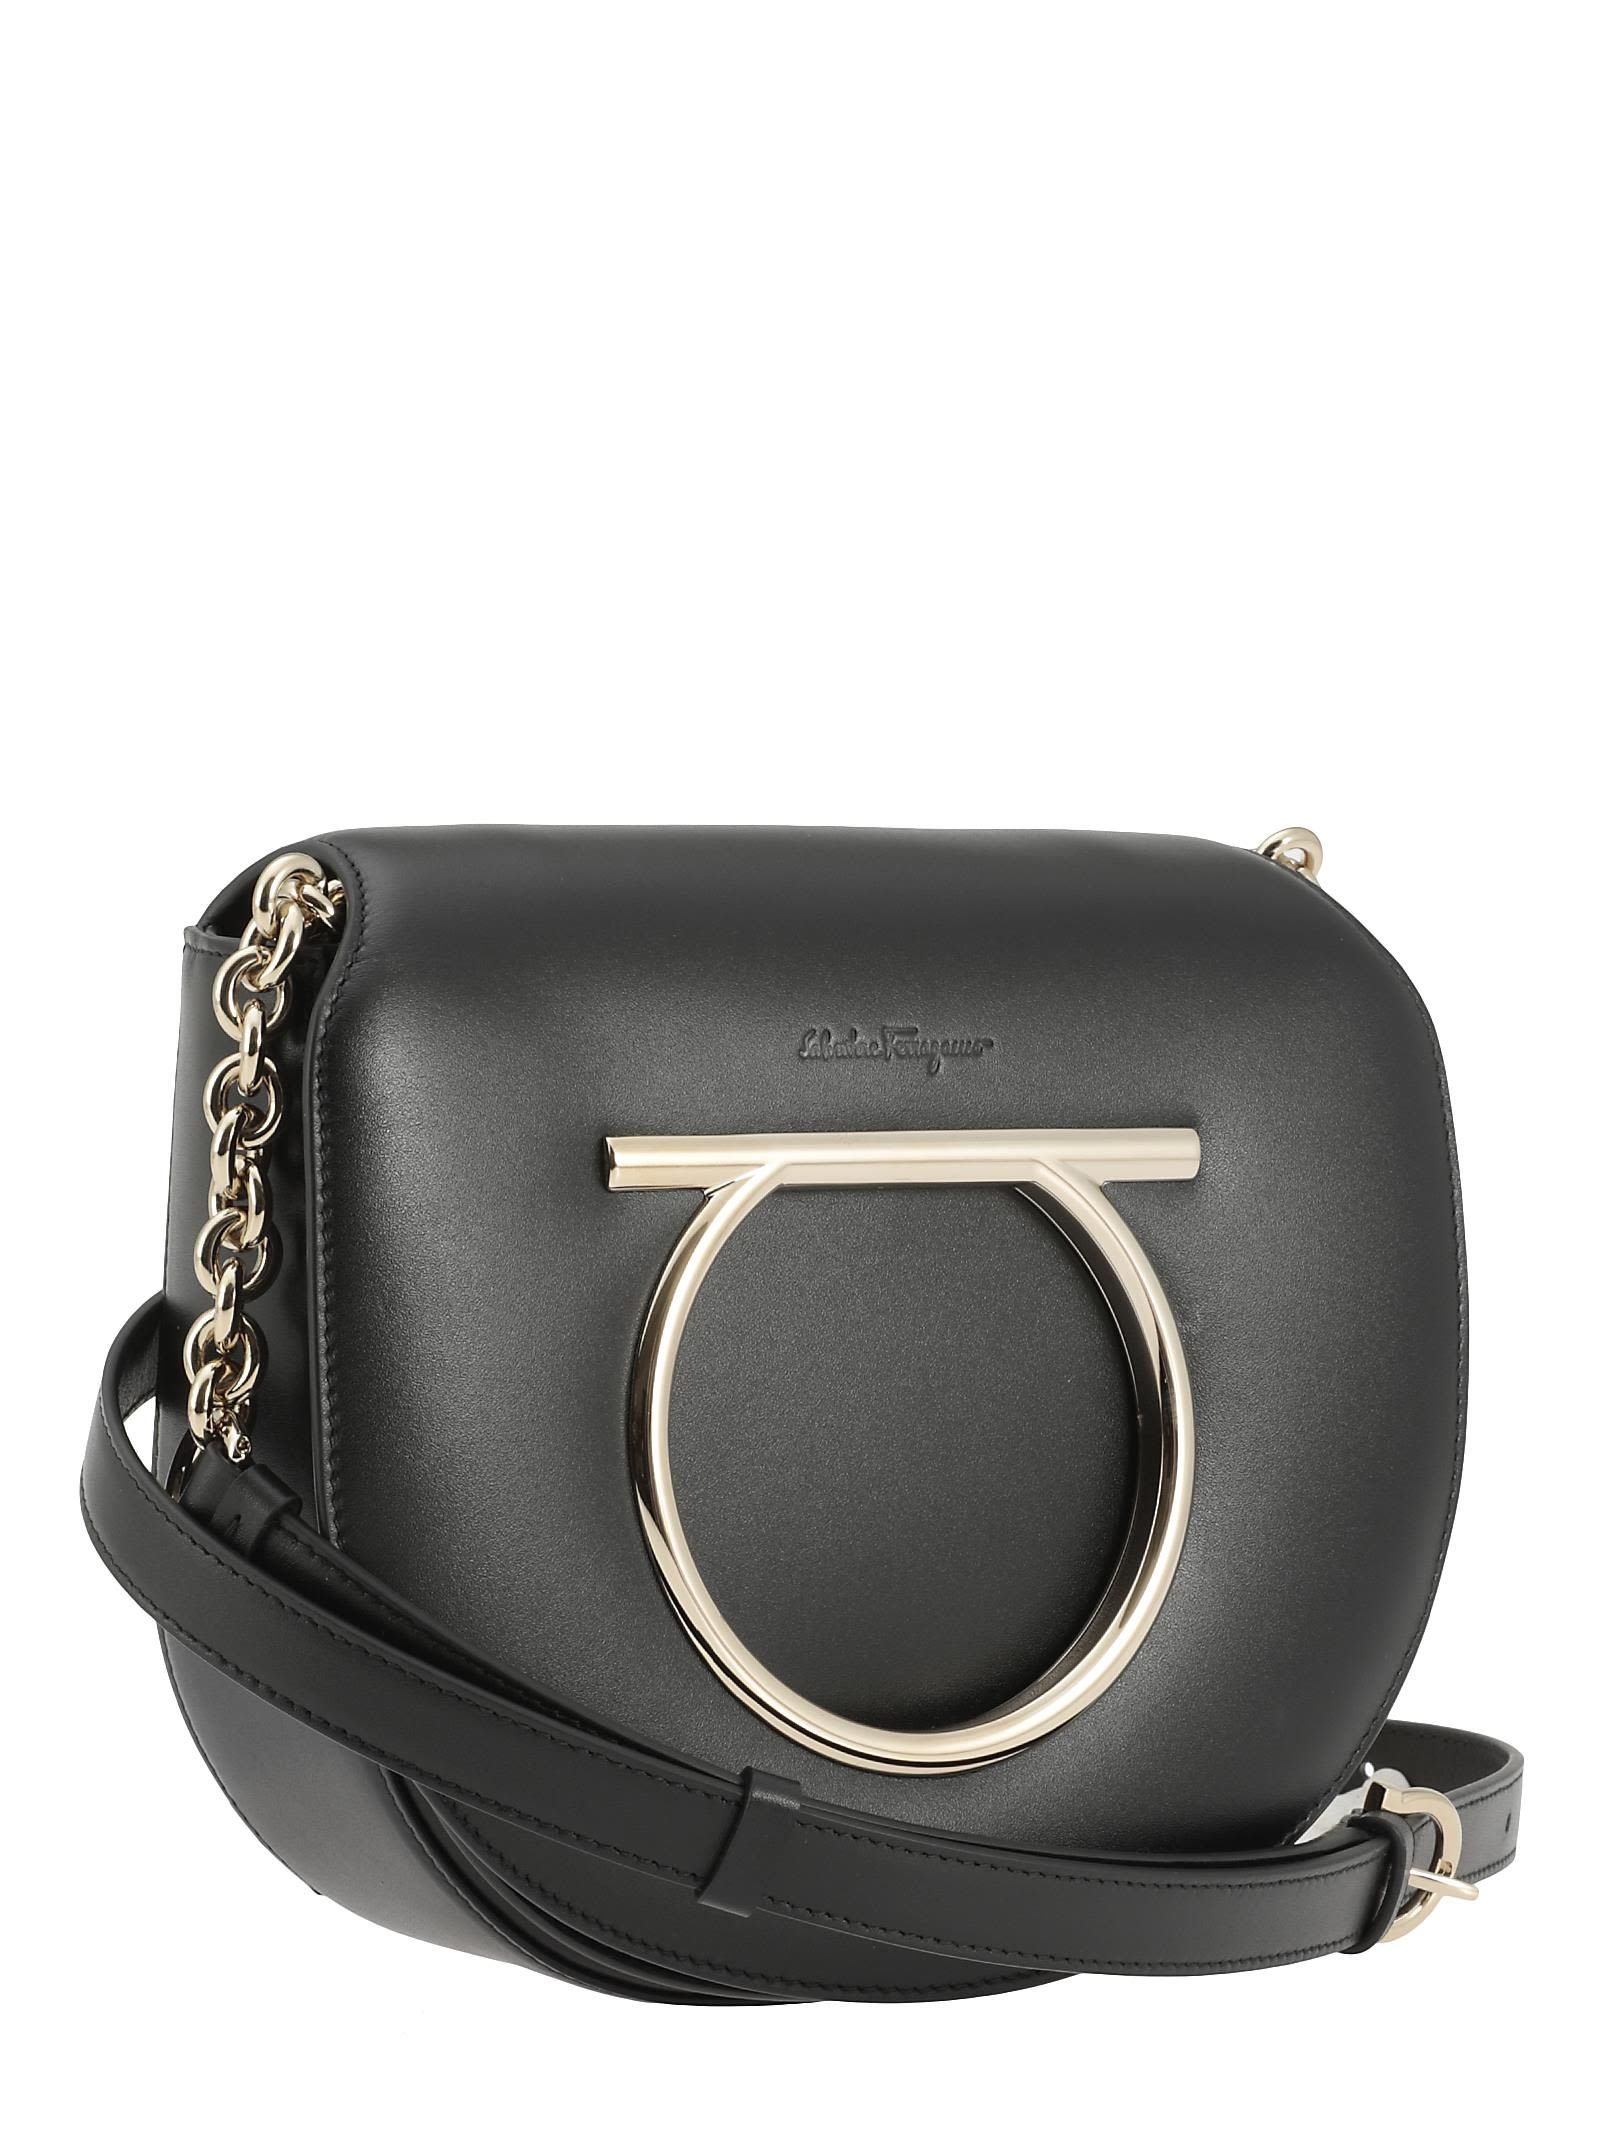 SALVATORE FERRAGAMO VELA BAG.  salvatoreferragamo  bags  shoulder bags   leather   73f6d30afb14c